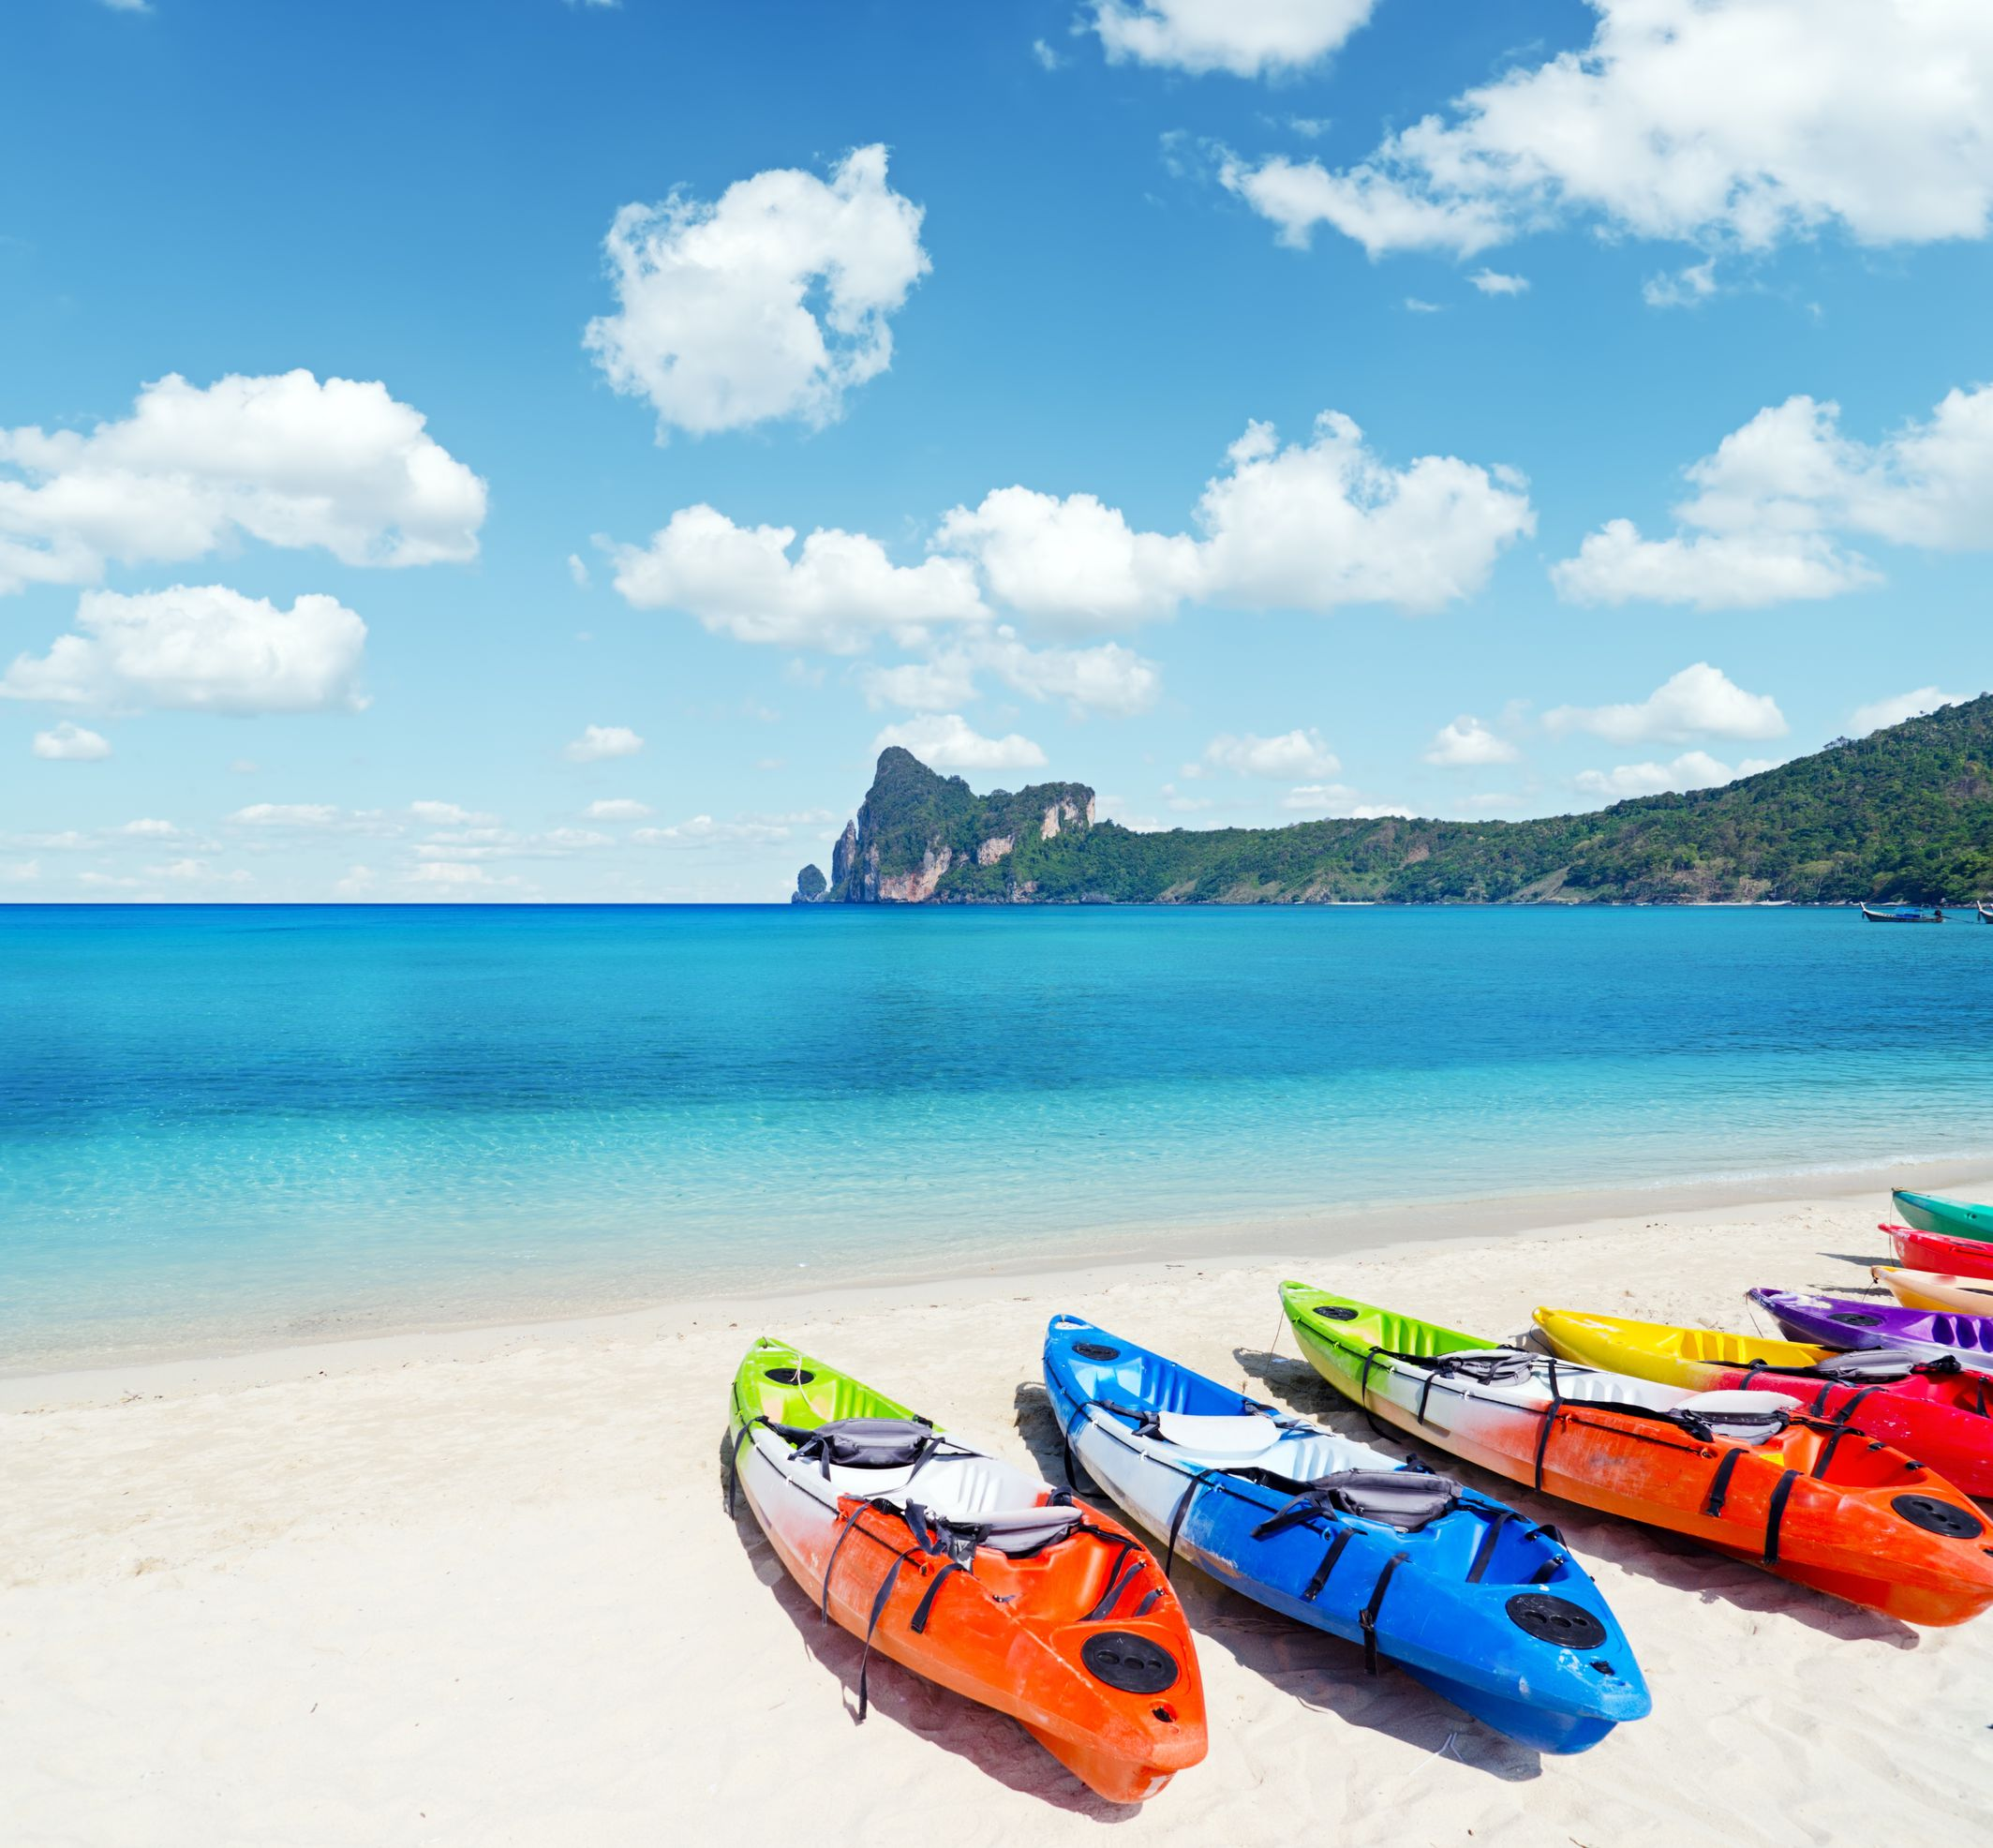 australia kayaks on the beach 123rf